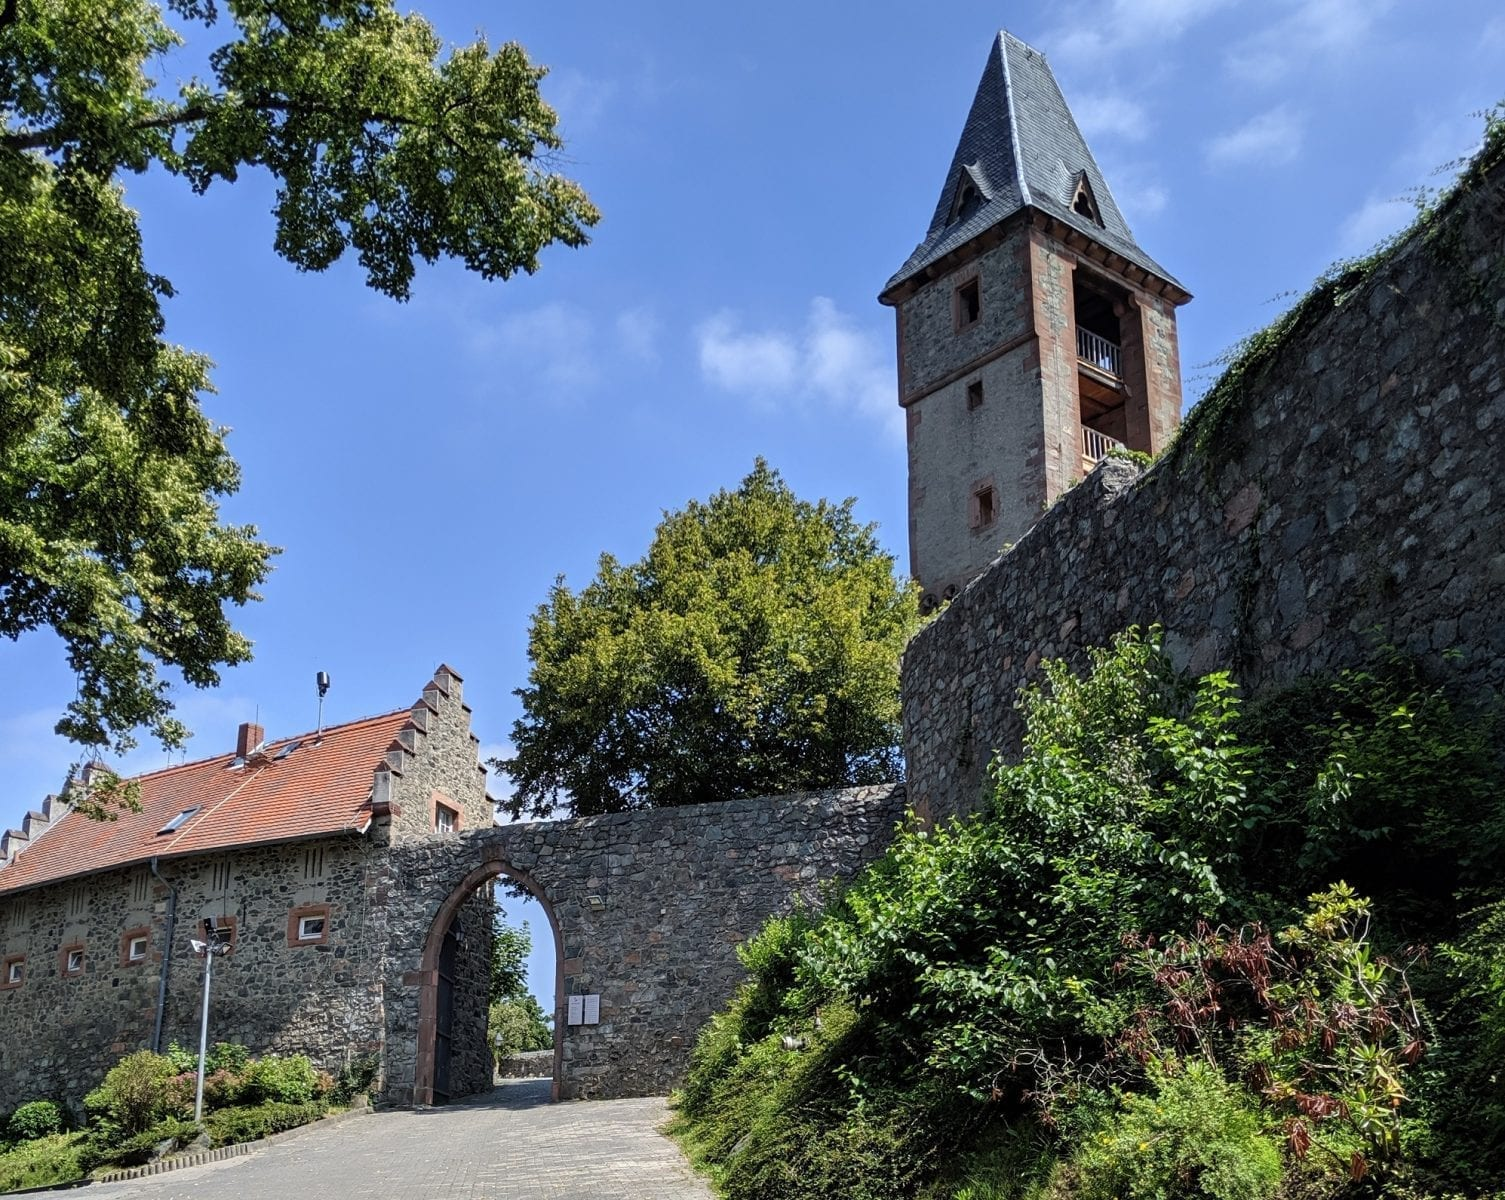 Castle Frankenstein in Germany- A Castle Swirled in Mystery and Legend